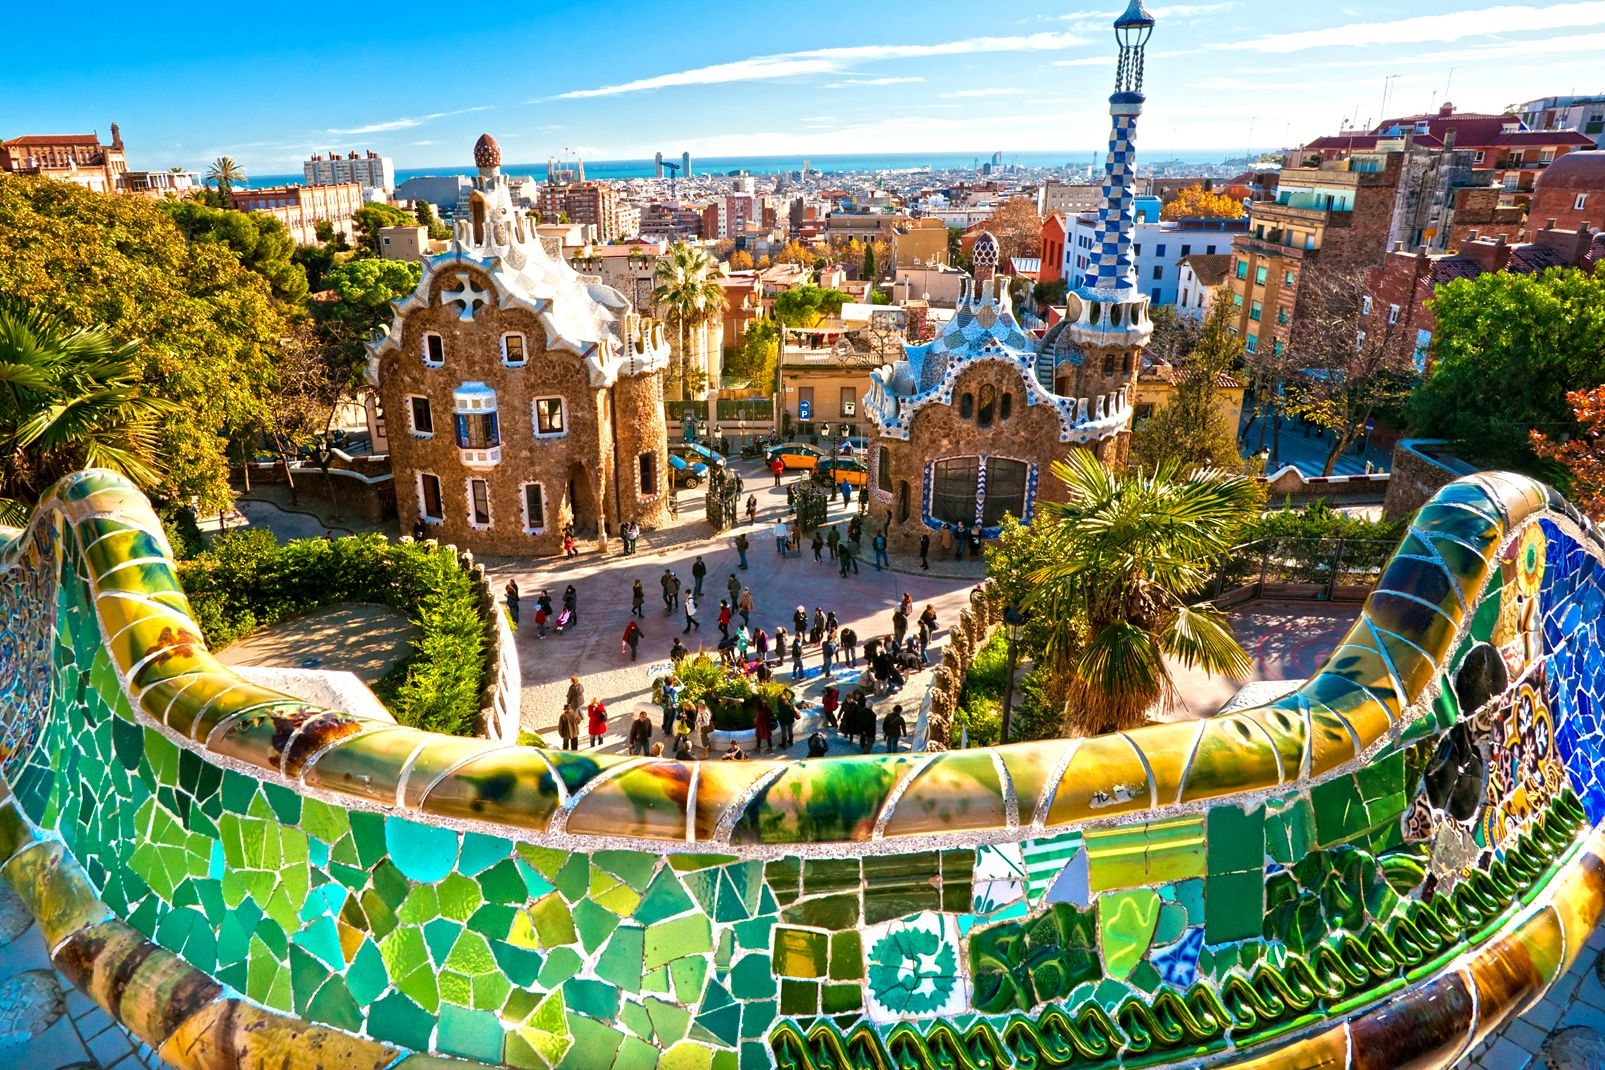 Europe, Espagne, art, gaudi, Barcelone, guell, parc